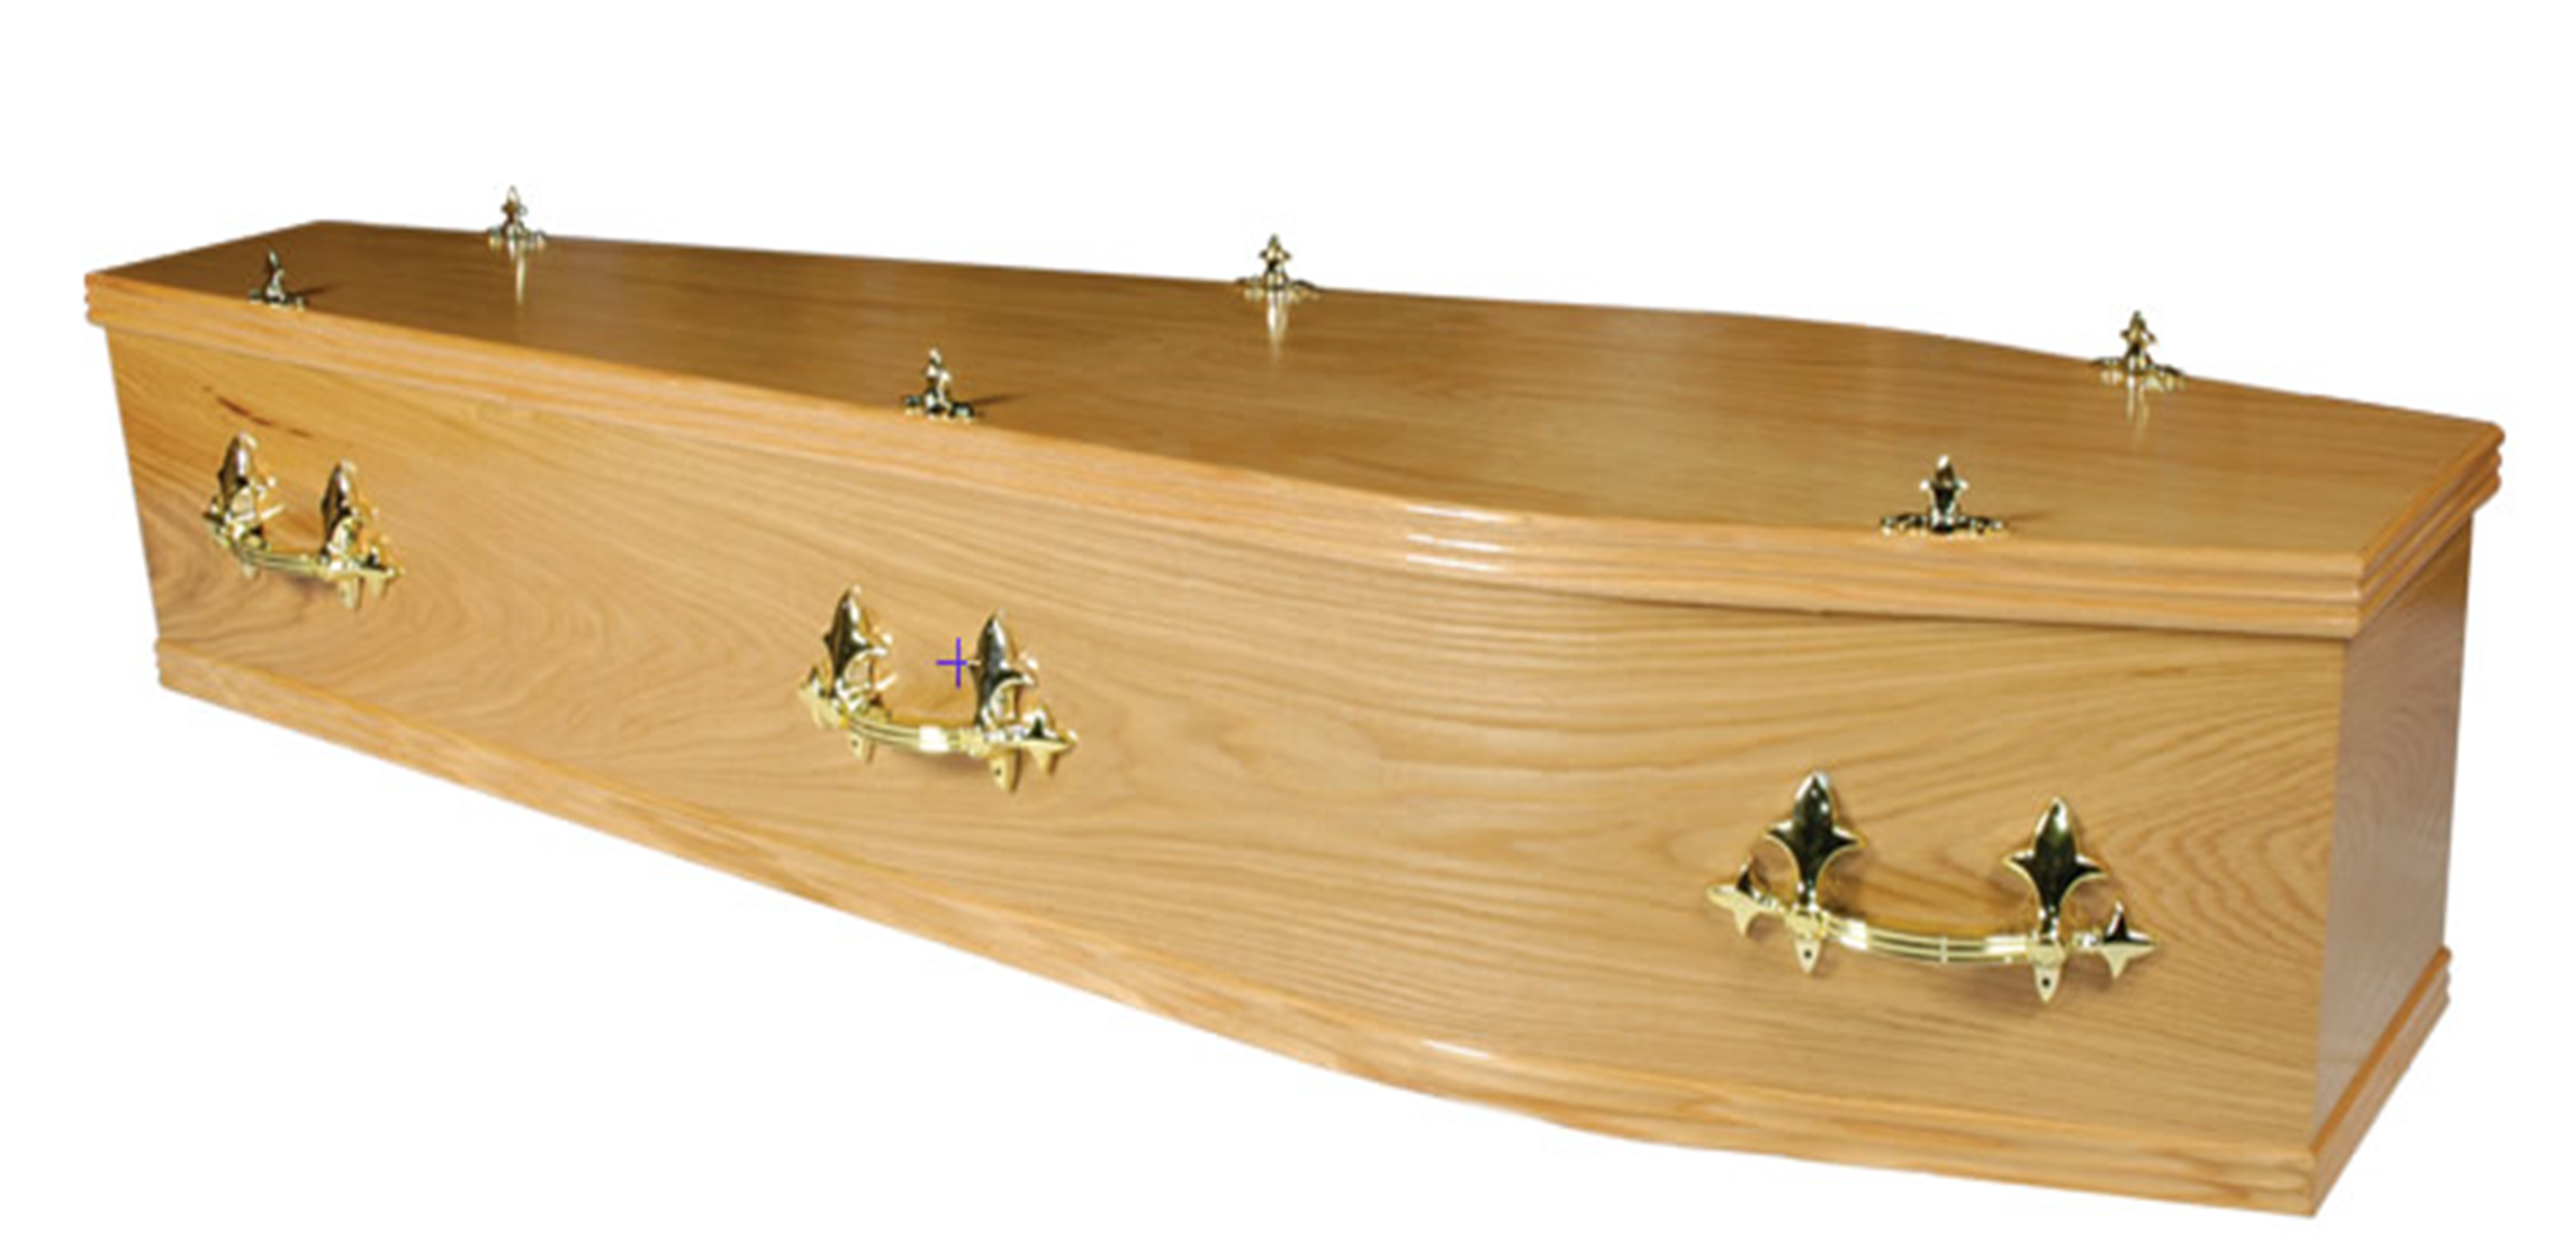 A high quality hand finished veneered Oak Coffin with traditional fittings.